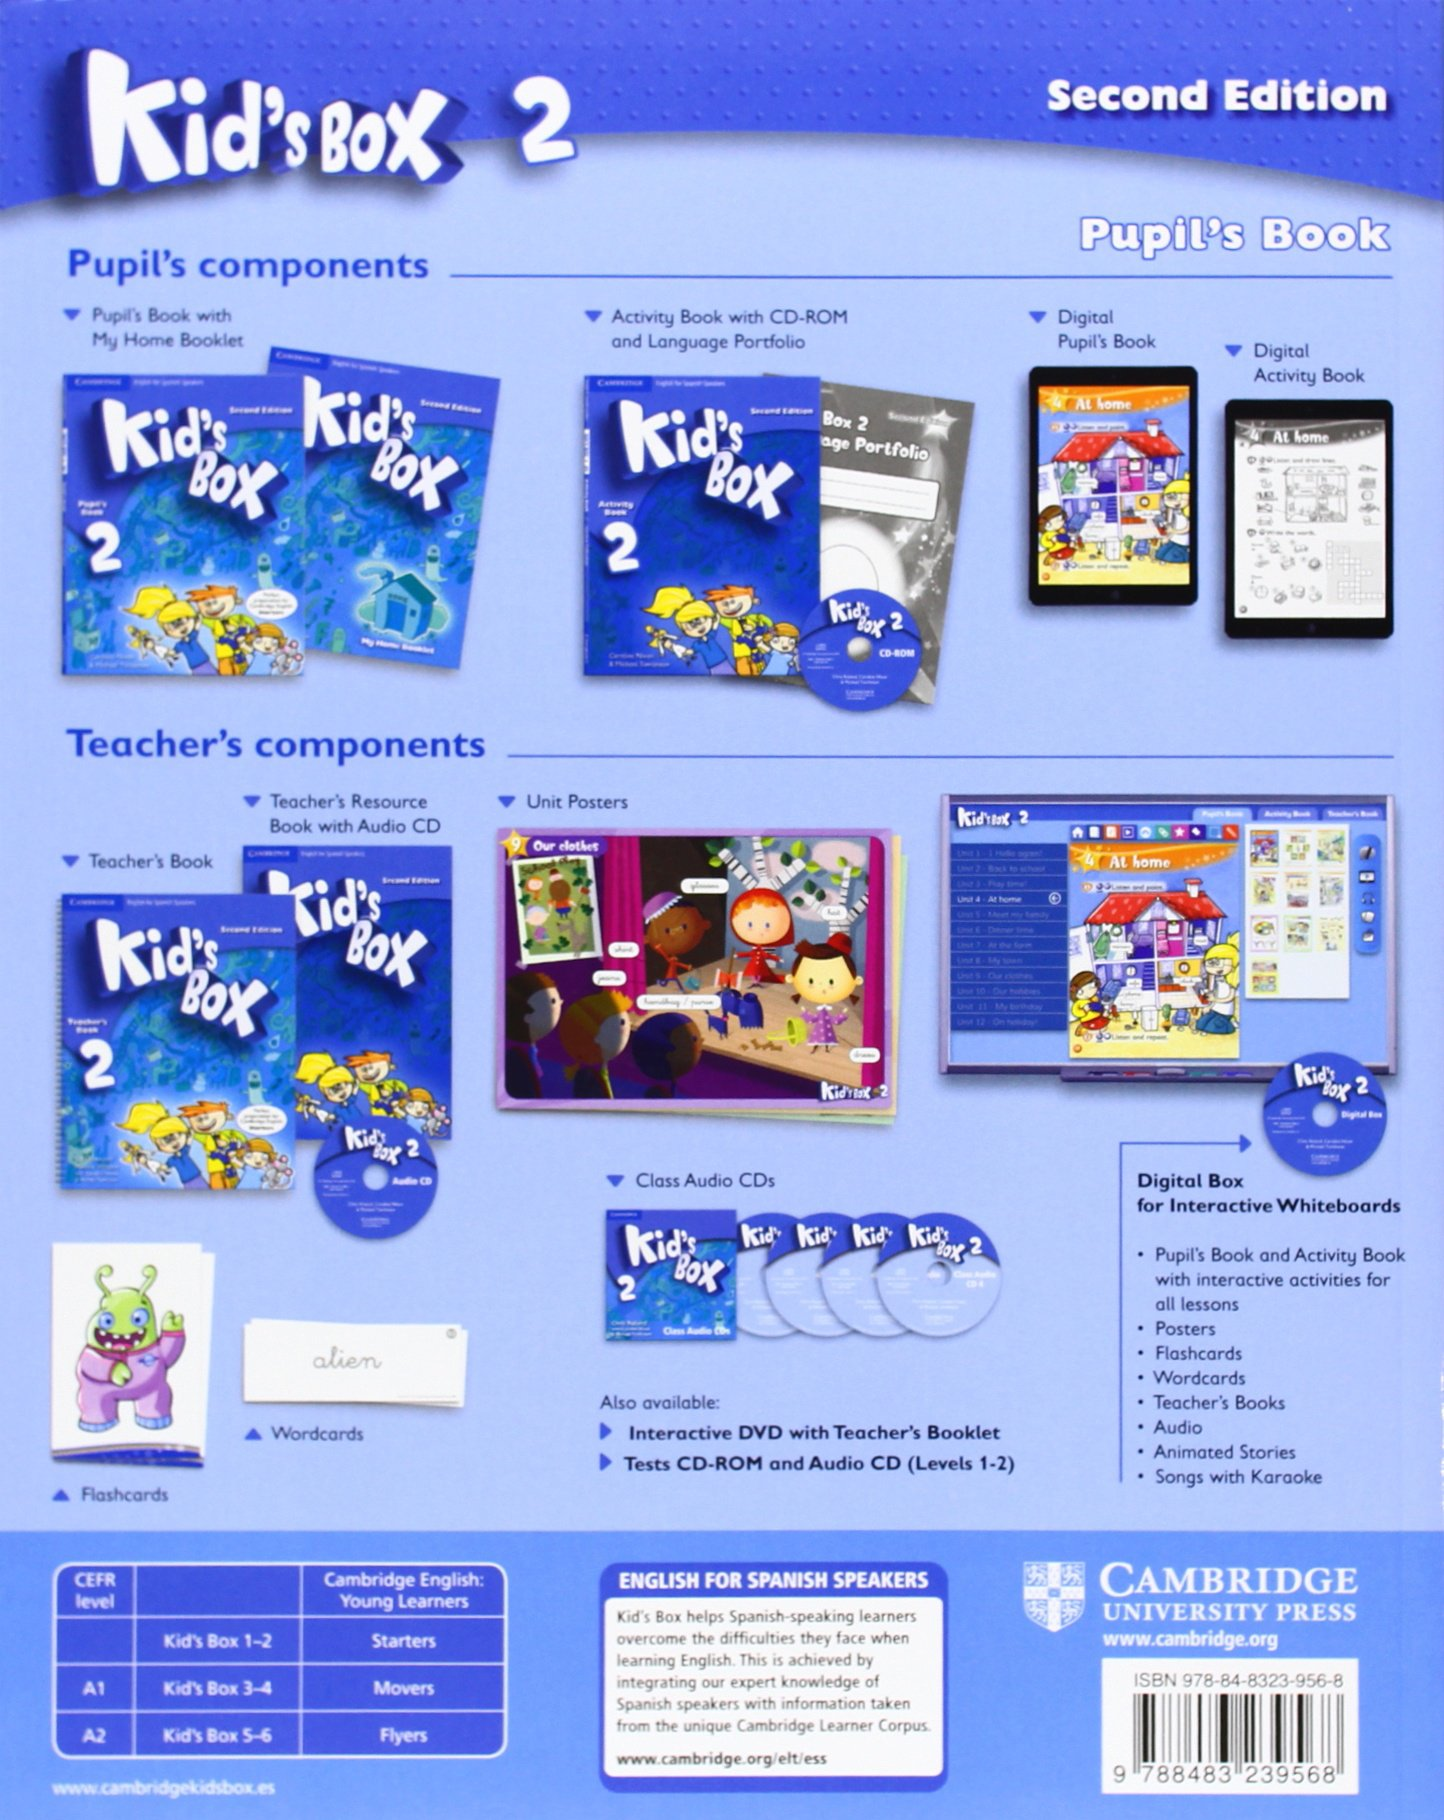 Kid's Box for Spanish Speakers Level 2 Pupil's Book with My Home Booklet Second  Edition - 9788483239568: Amazon.es: Caroline Nixon, Michael Tomlinson, ...